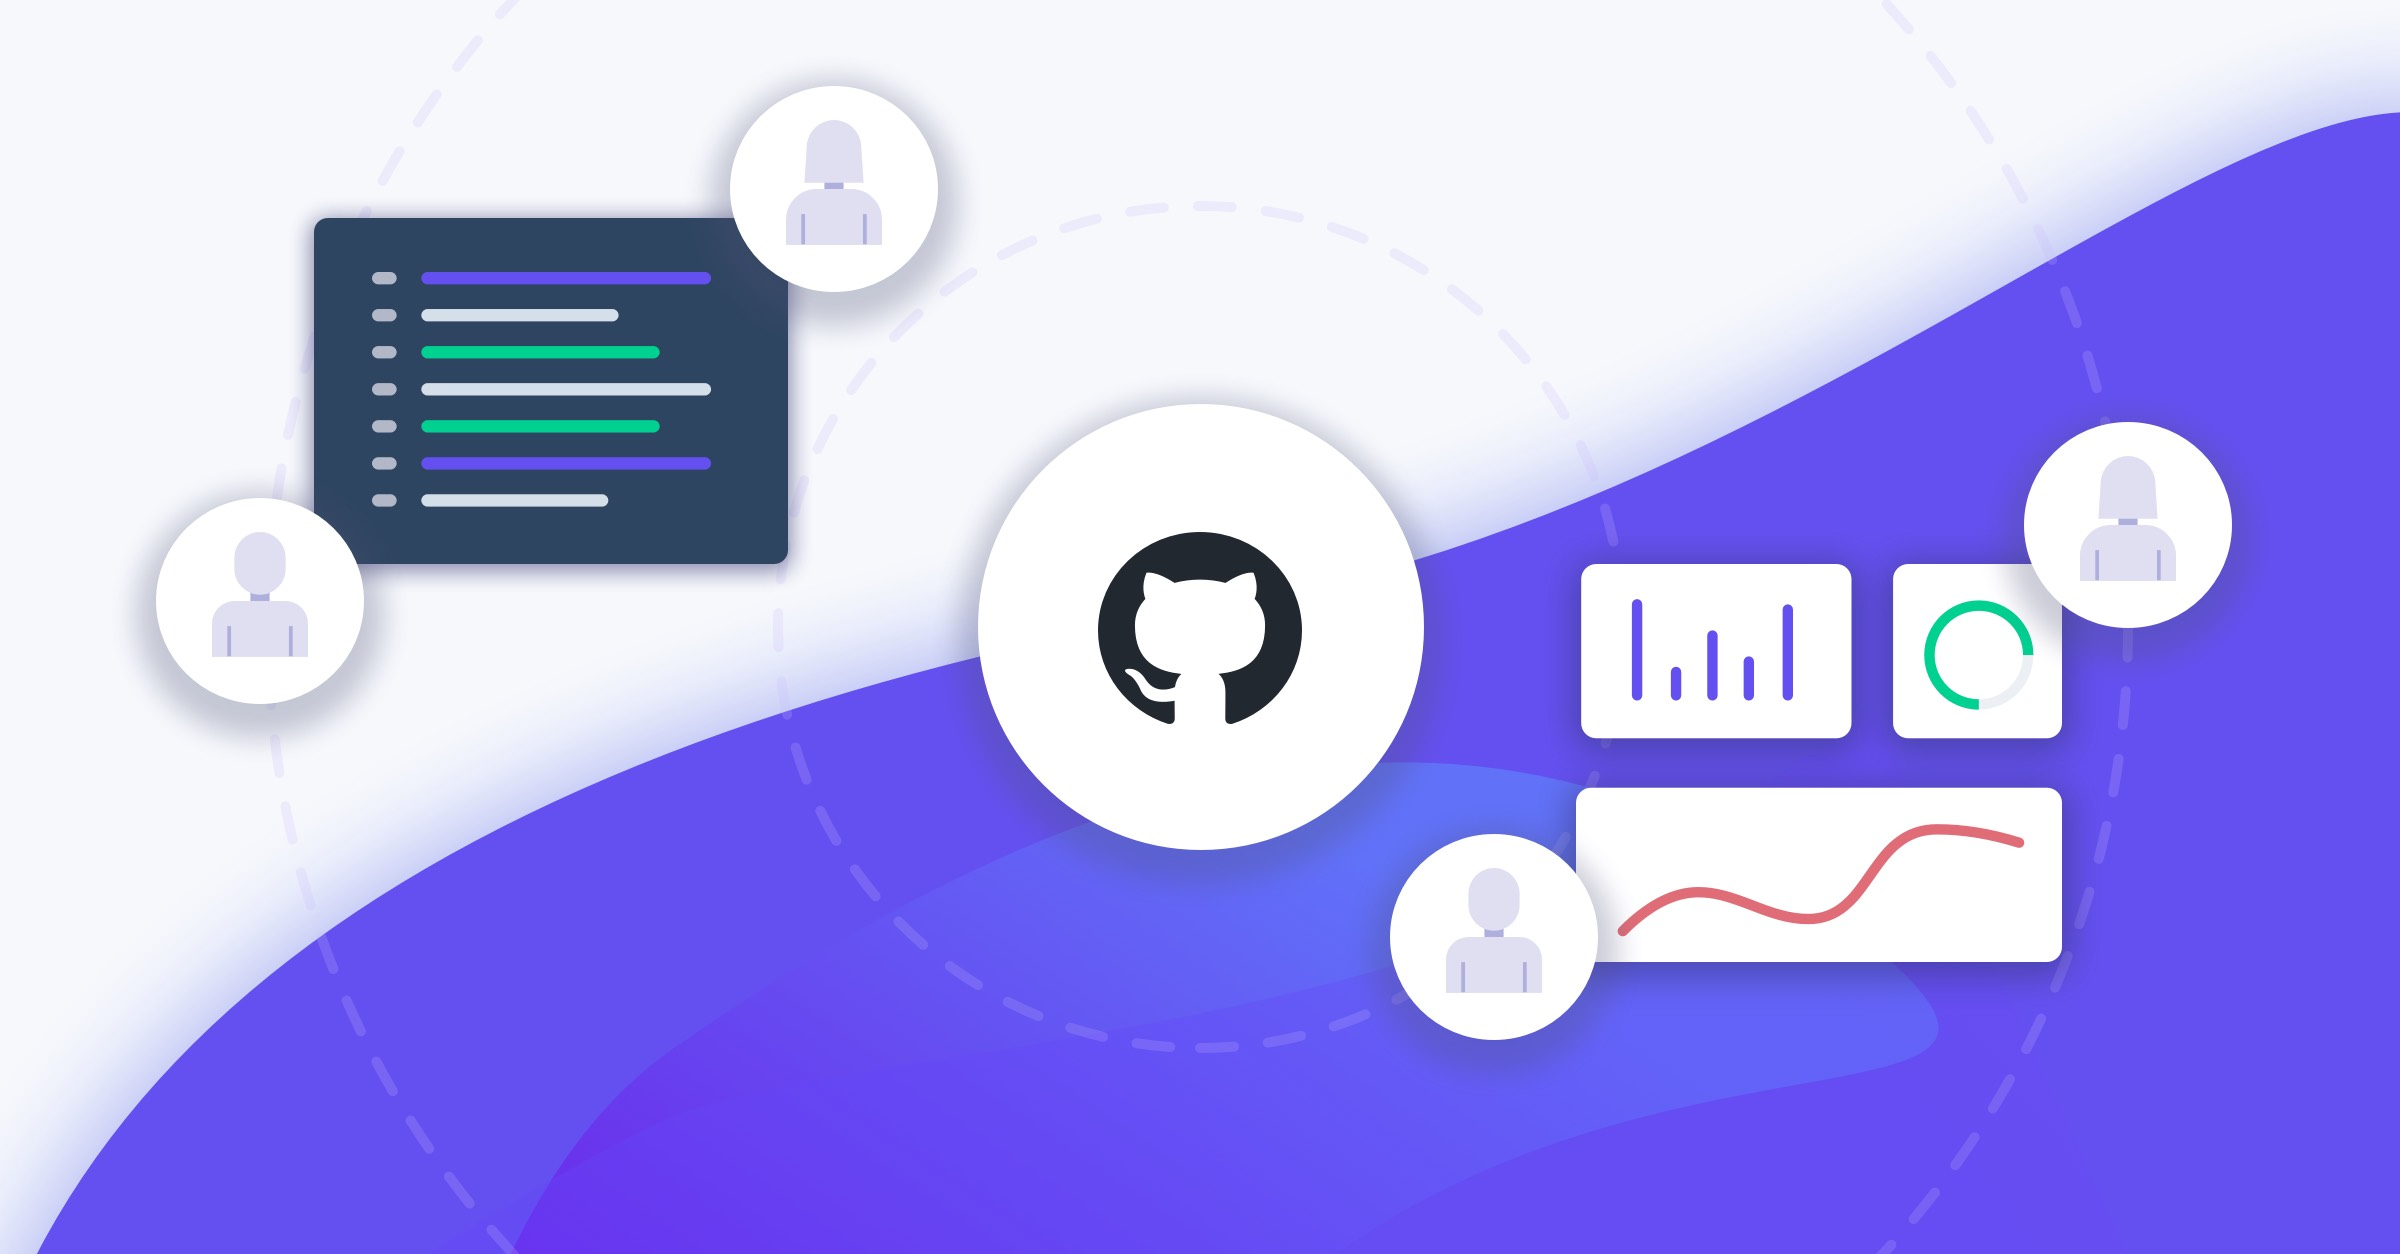 Aligning Product and Engineering Teams Inside GitHub